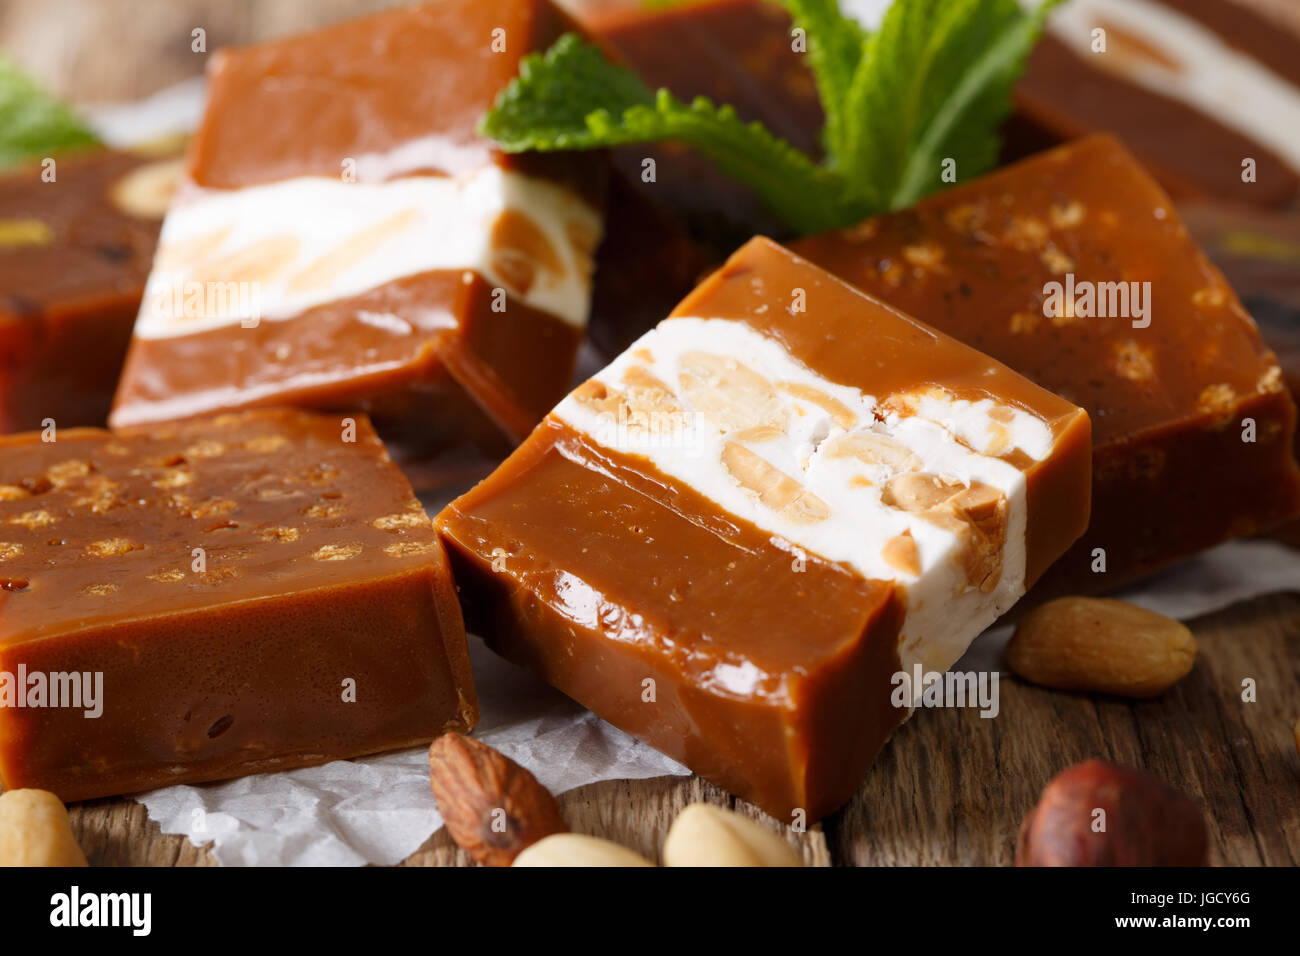 Candy toffee with almonds, decorated with fresh crumpled macro on parchment on the table. Horizontal - Stock Image